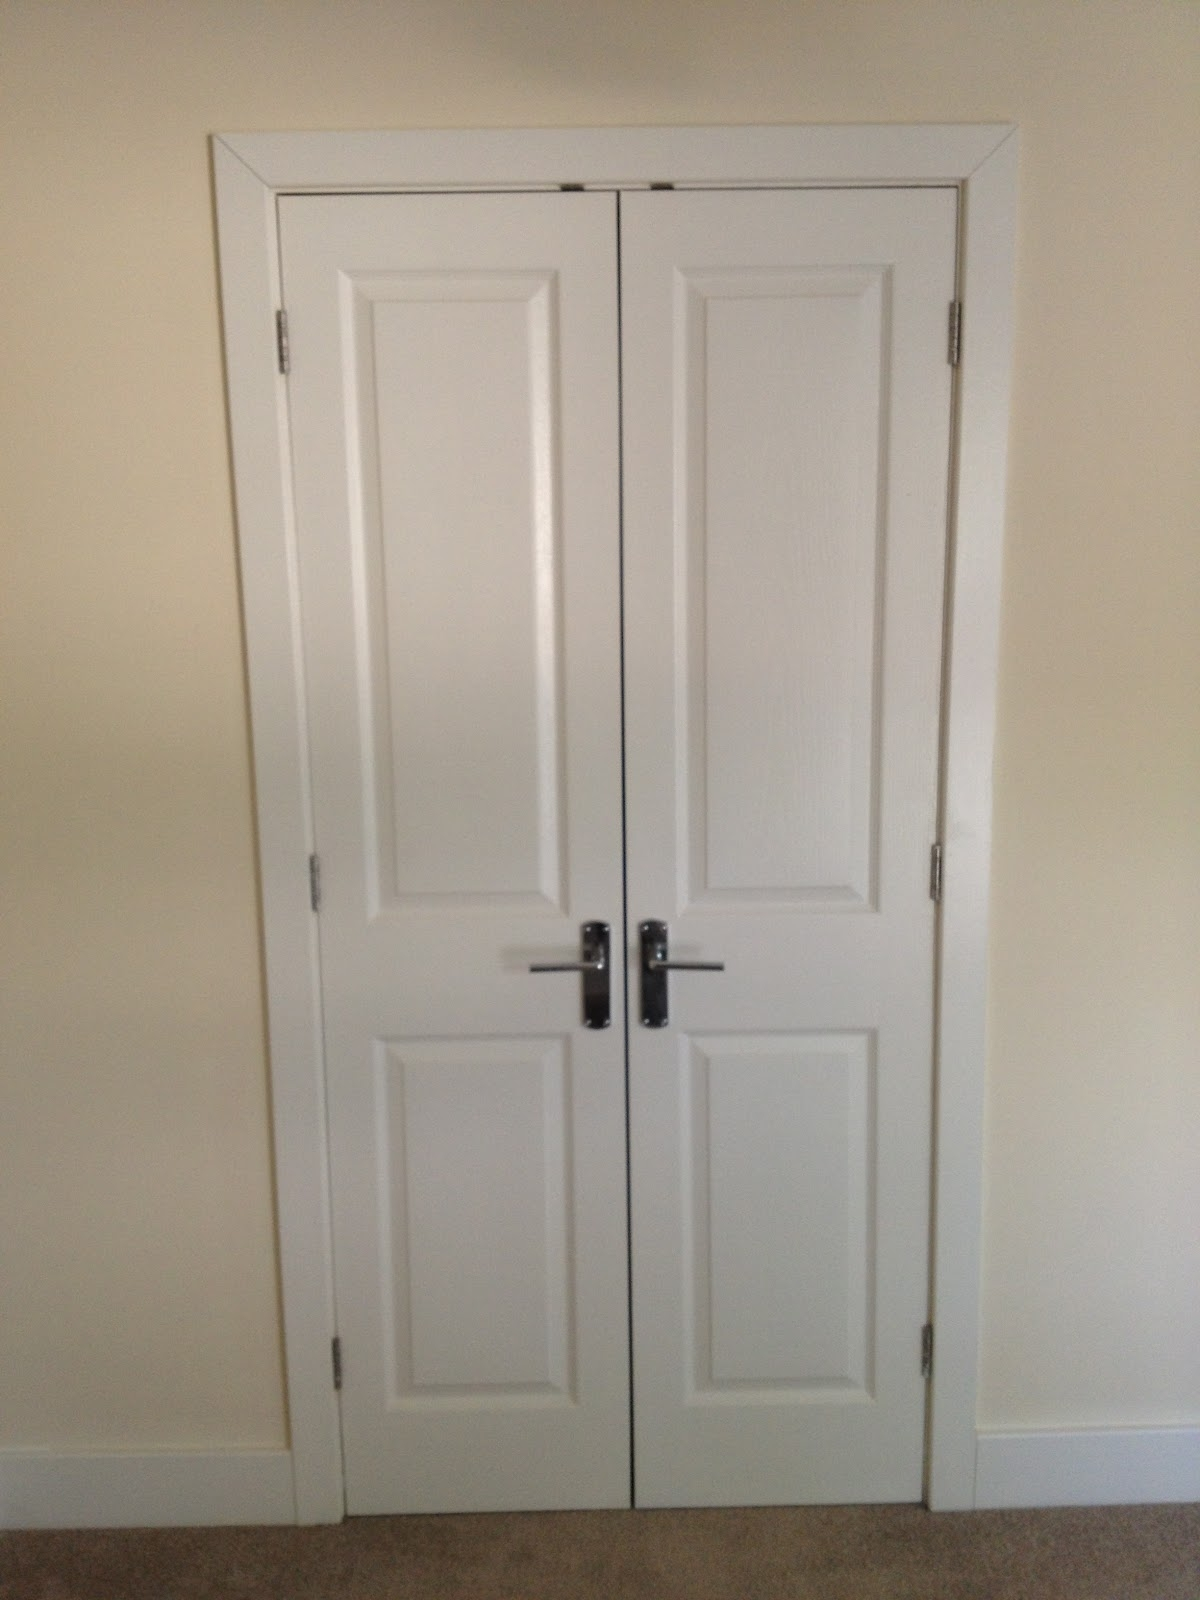 Most Current Highly Regarded Double Swing Doors Built In Wardrobe For Space Regarding French Built In Wardrobes (View 14 of 15)